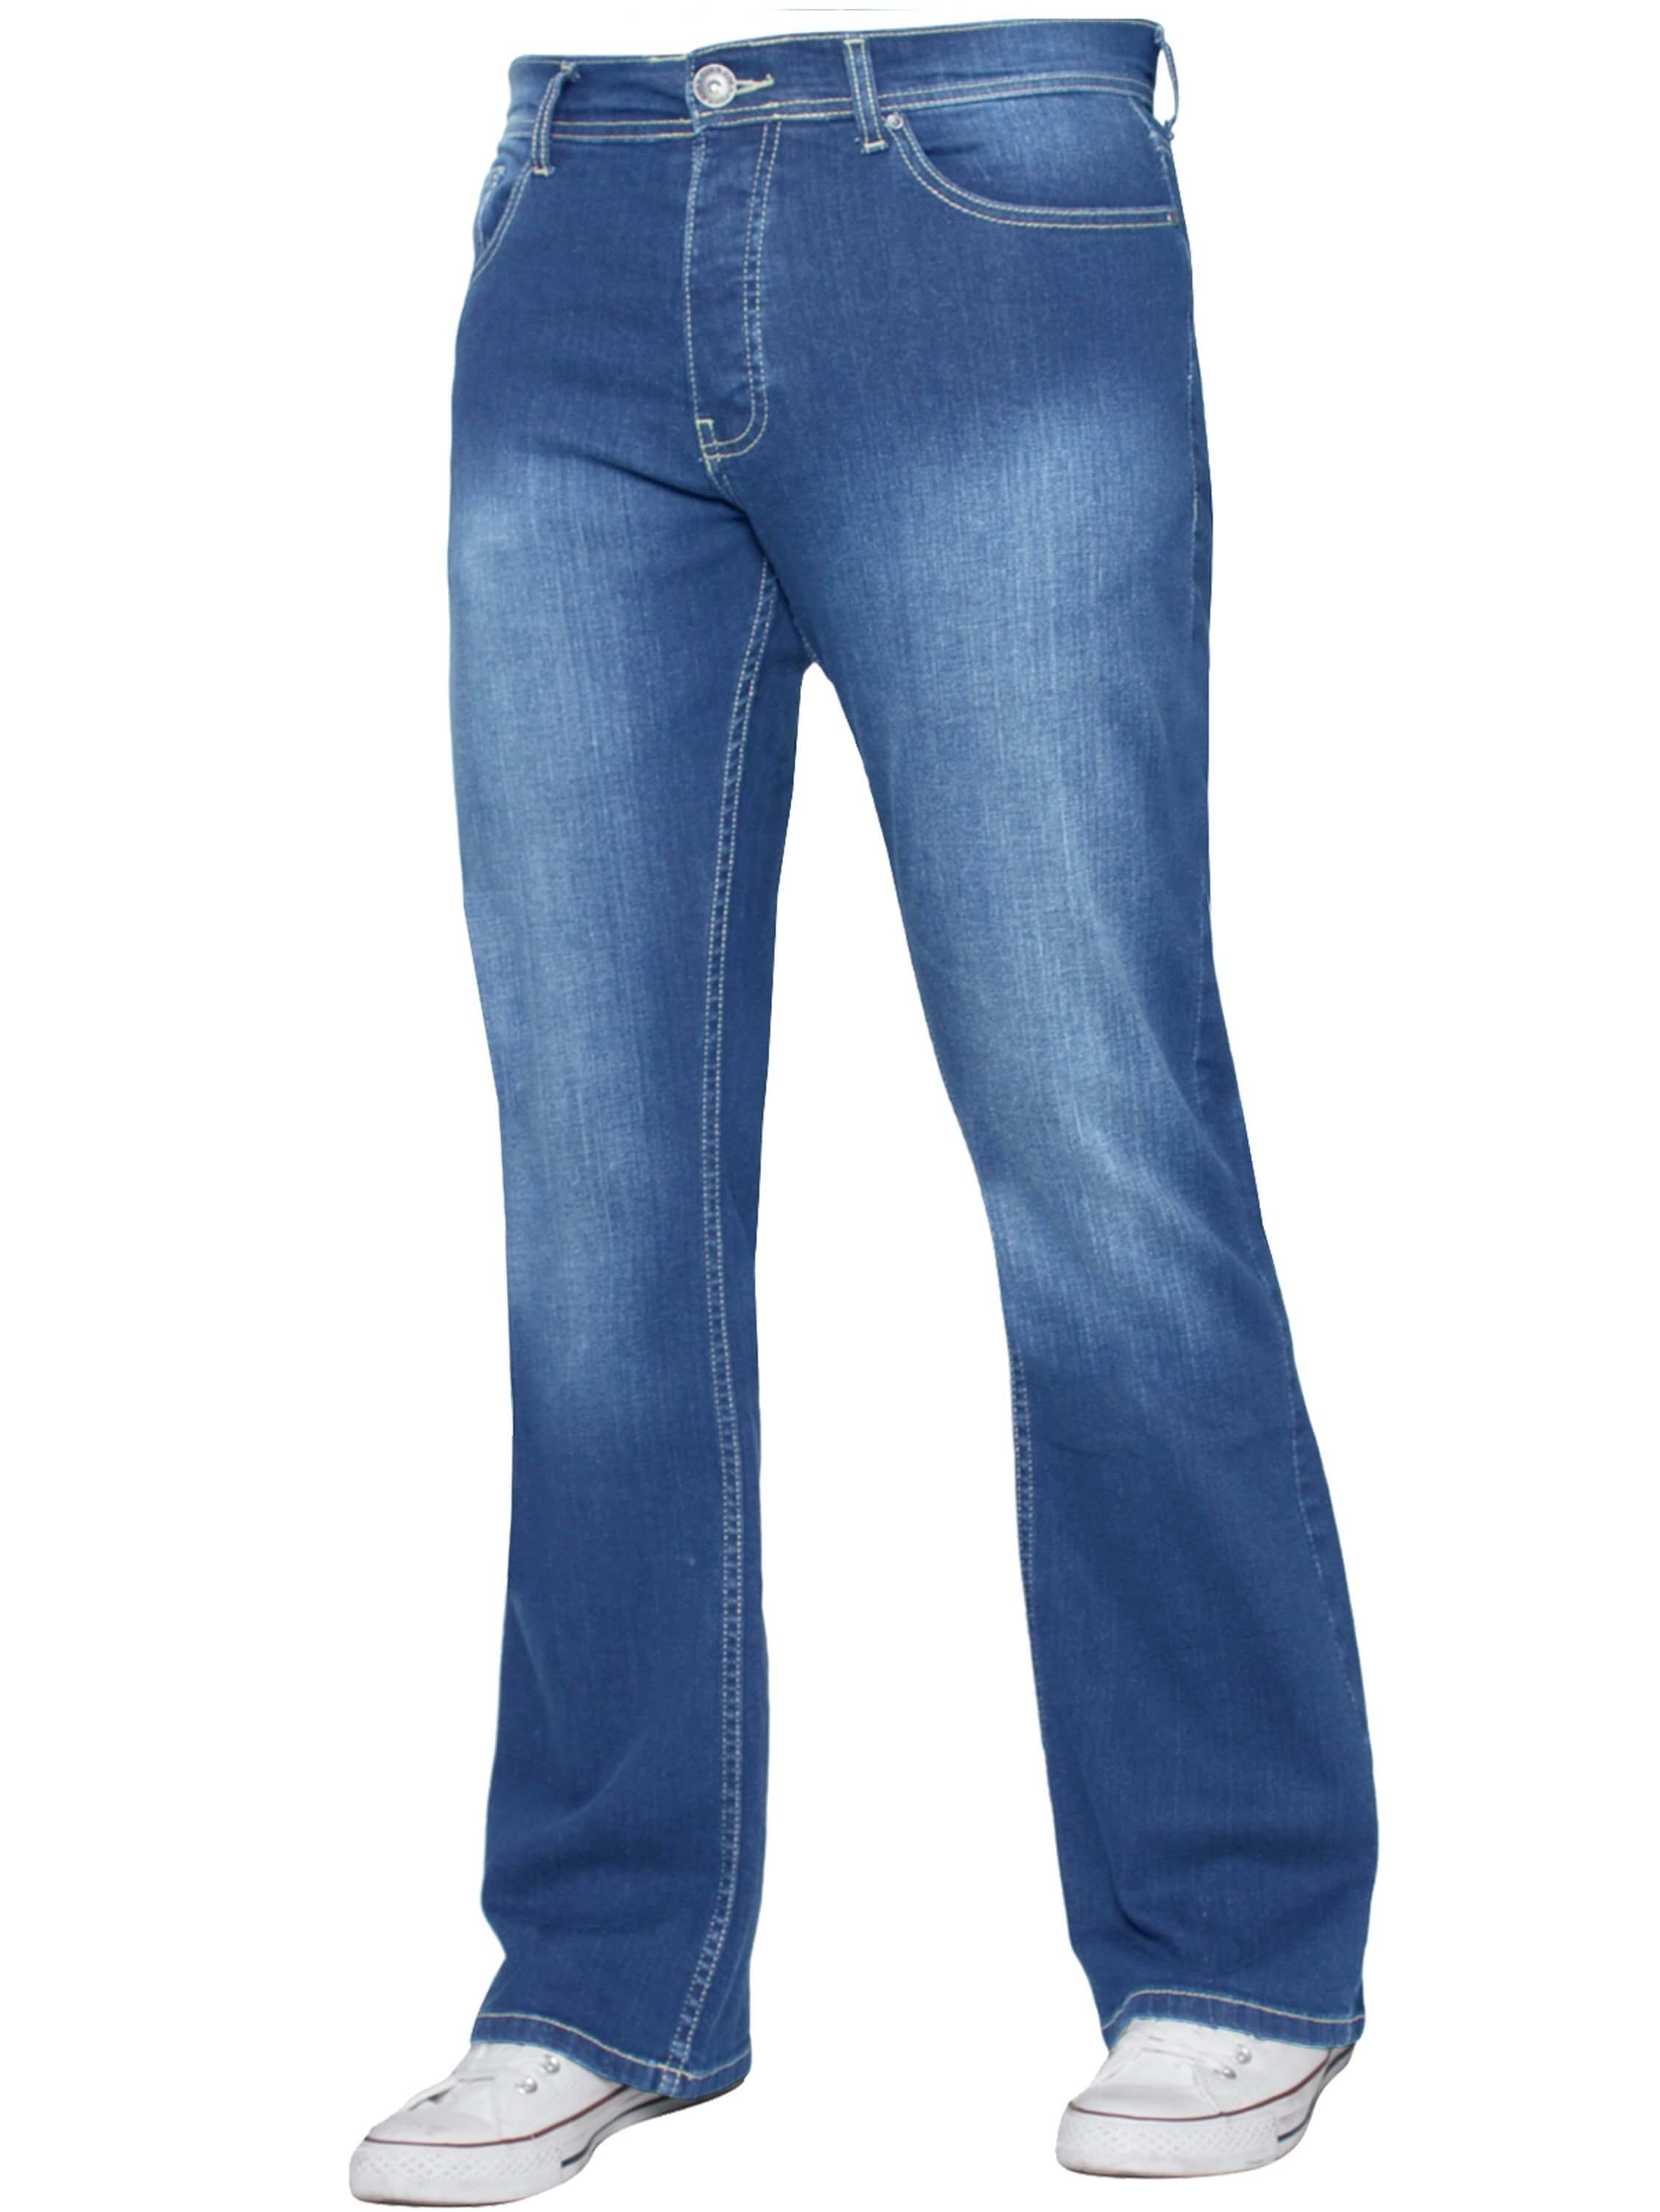 Image of Raw Denim Designer Outlet - Designer Mens Light Blue Bootcut Denim Jeans Enzo Designer Menswear by Enzo of Light Wash color for only £19.99 // Raw Denim